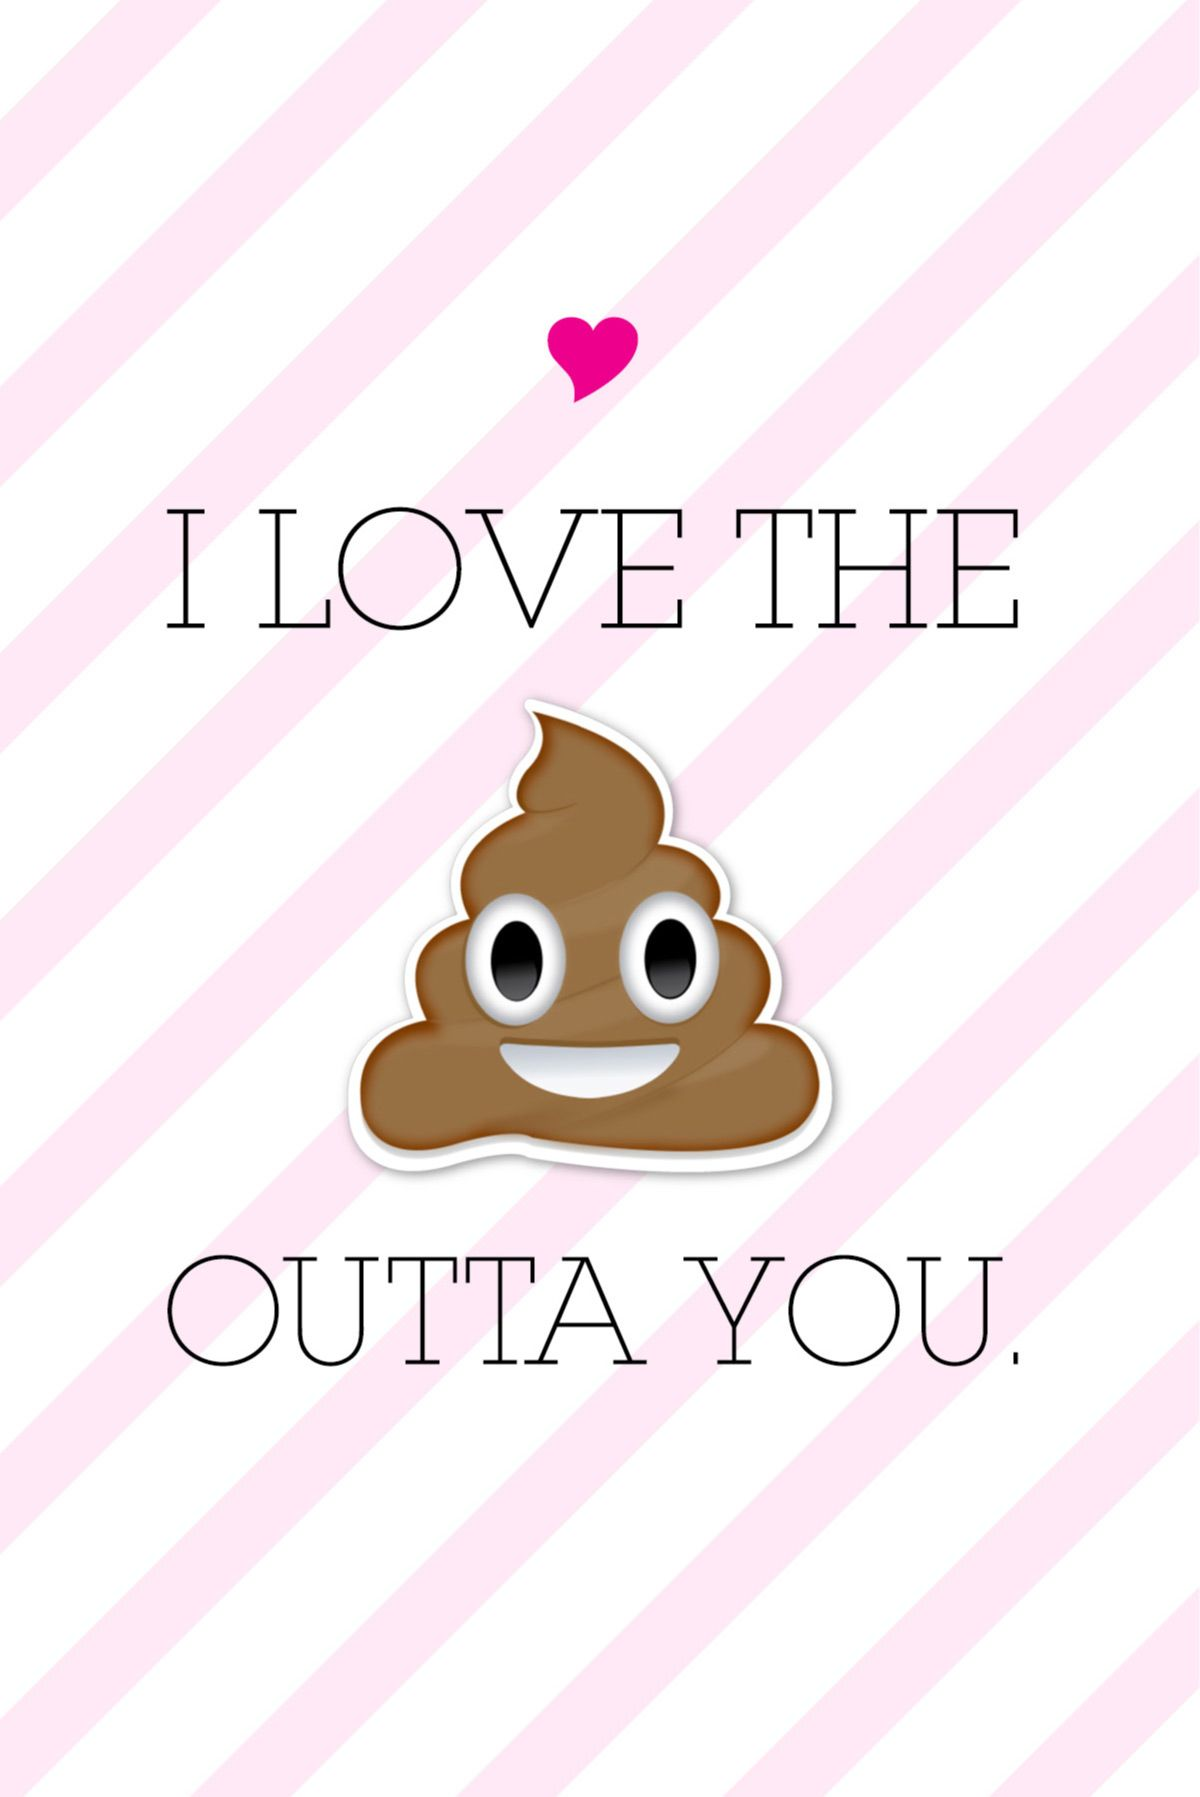 6 Super Cute Valentine S Day Cards To Give Everyone You Love Cute Valentines Day Cards Friends Valentines Valentine Day Cards